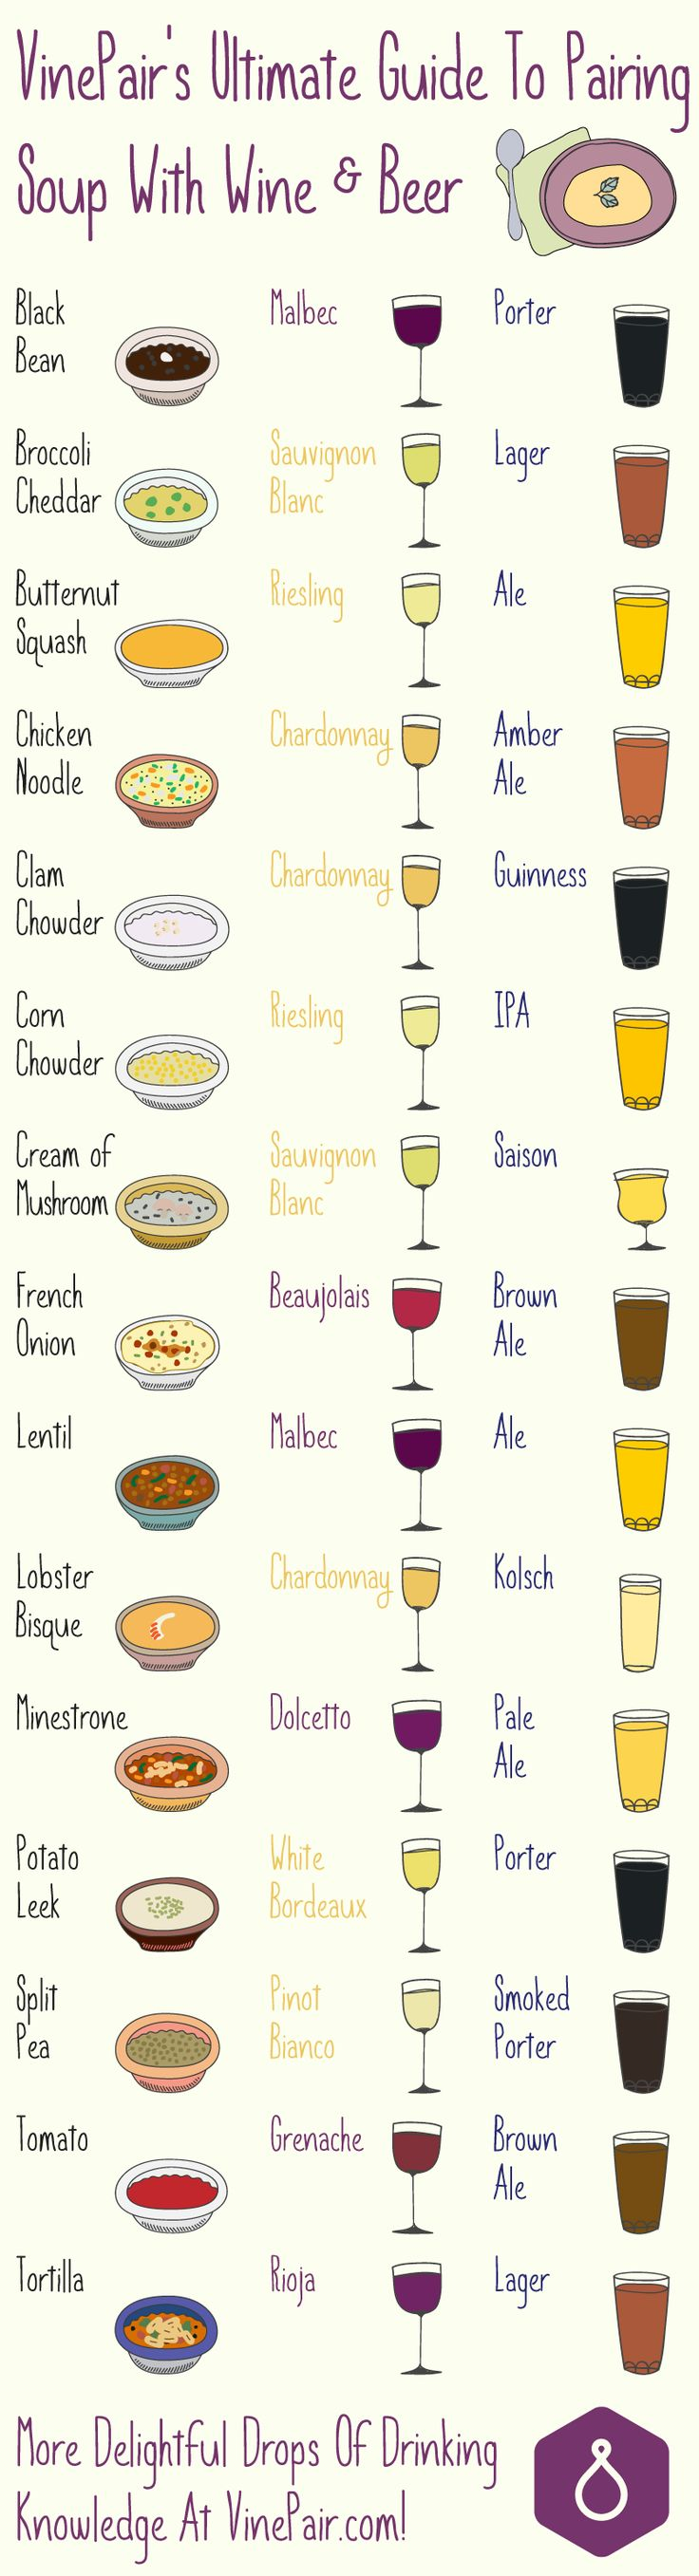 The Ultimate Guide To Pairing Soup With Wine & Beer: INFOGRAPHIC